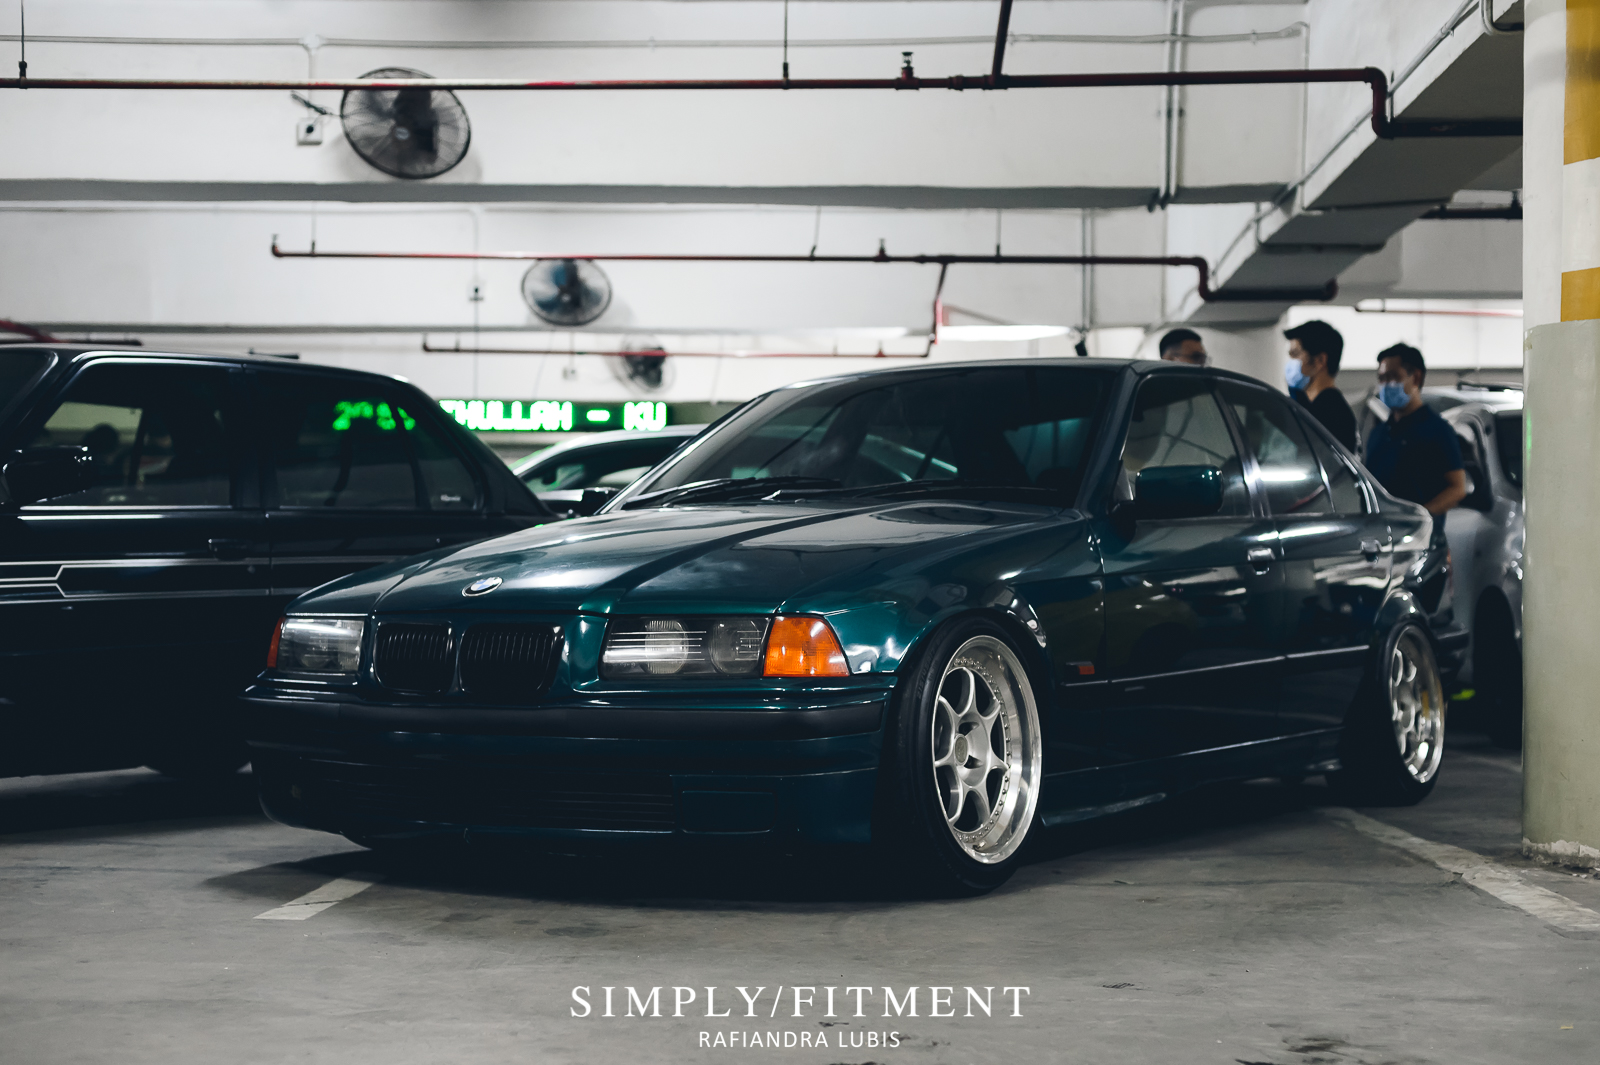 LOWFITMENT DAY 15 - DAY 1 (27 NOVEMBER 2020)